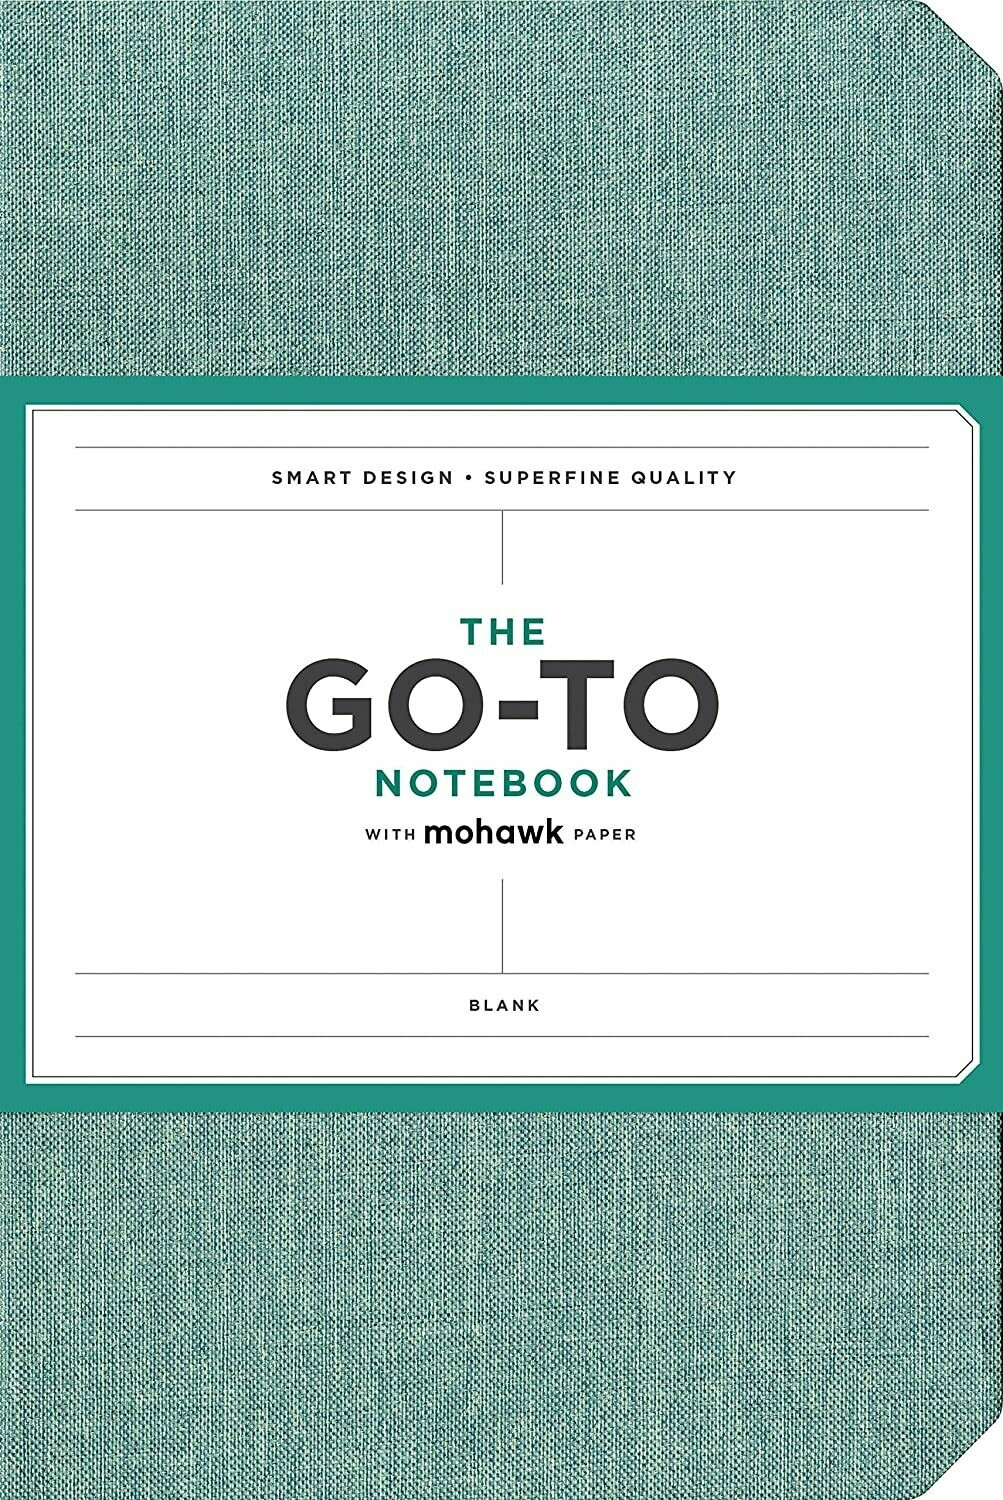 Go-To Notebook Blank Blue